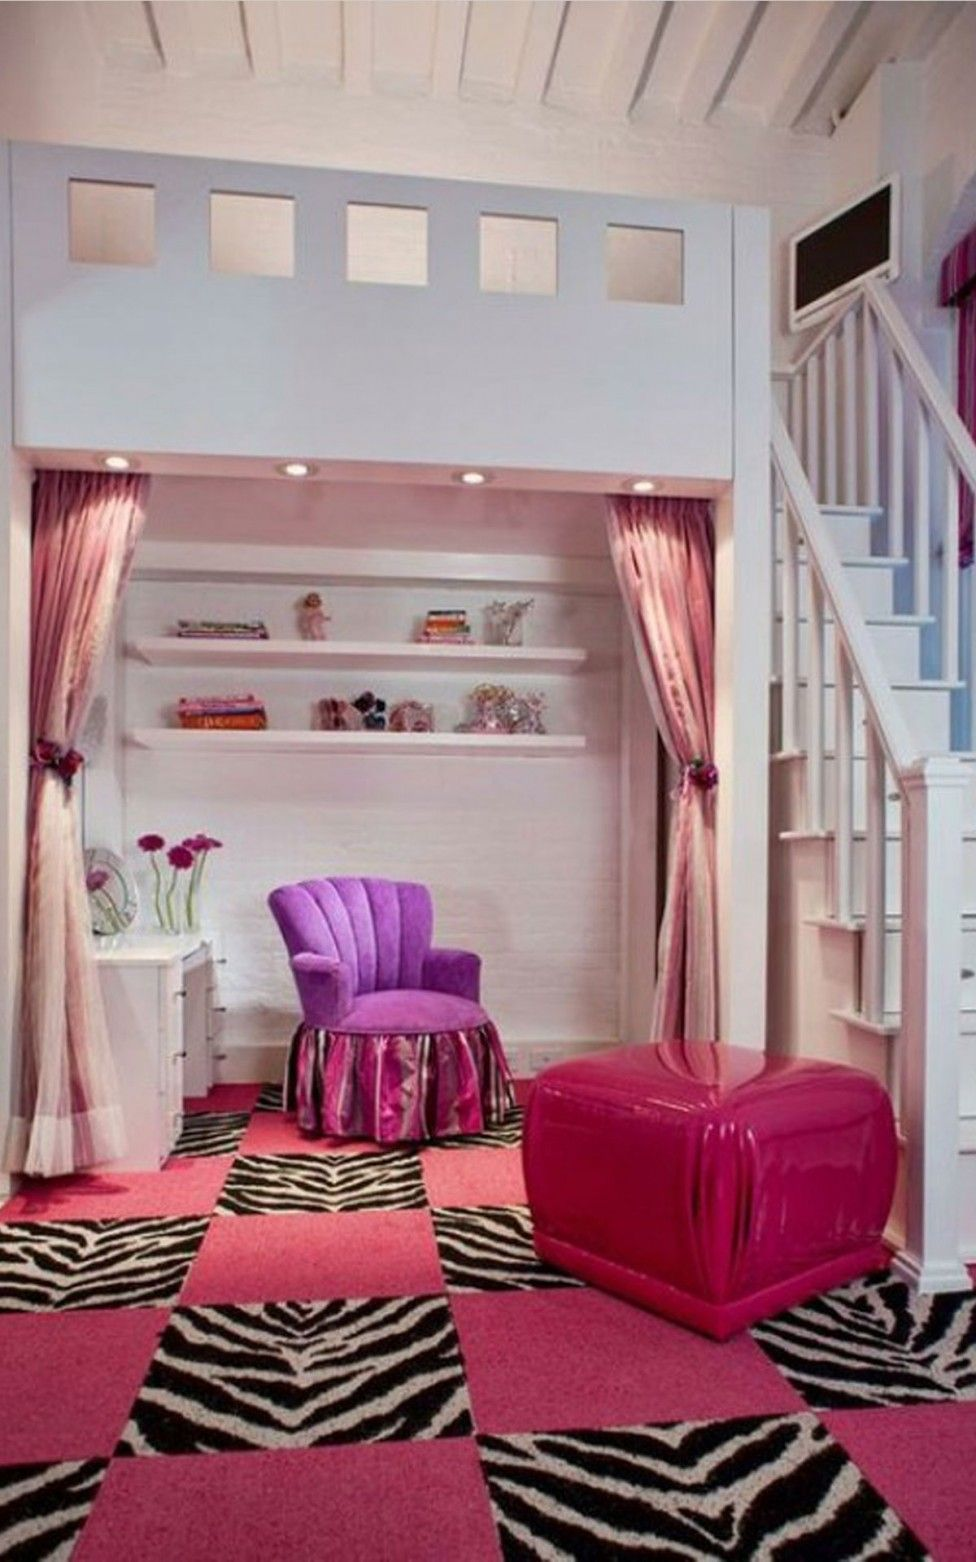 Small room ideas for girls with cute color bedroom 22 for Small bedroom color ideas